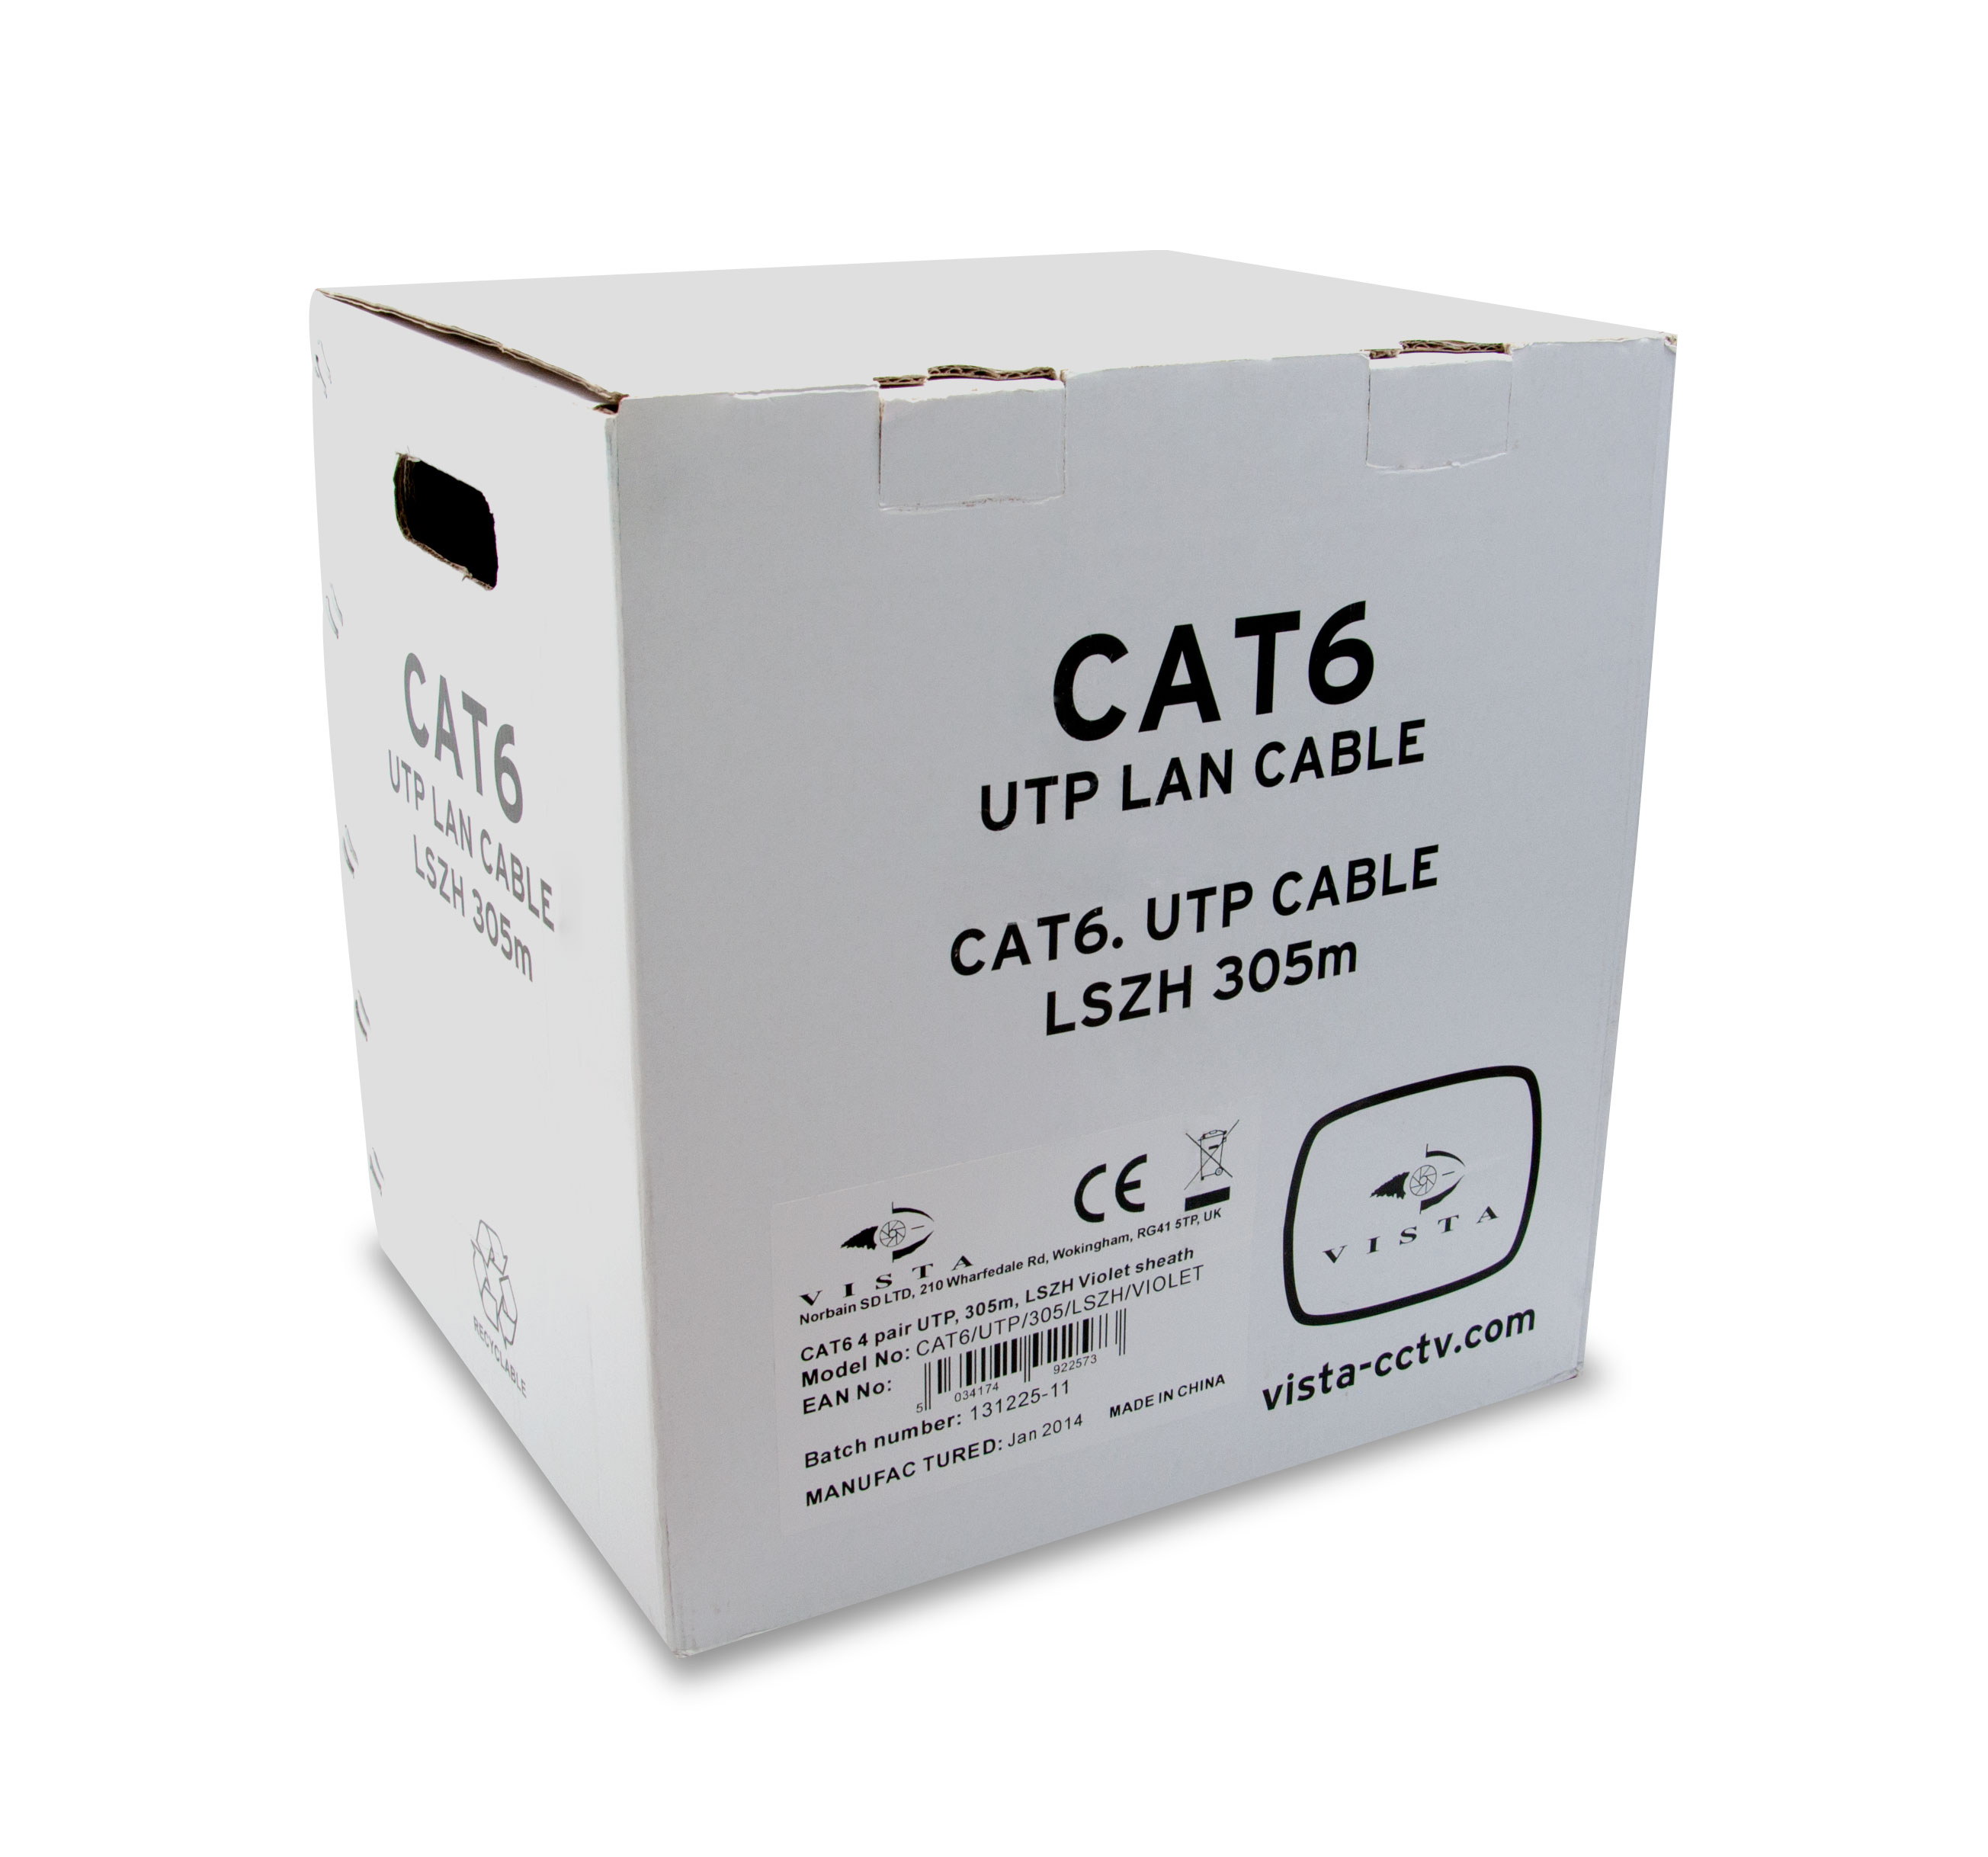 305m CAT6 4 pair UTP grey duct (PE) sheath